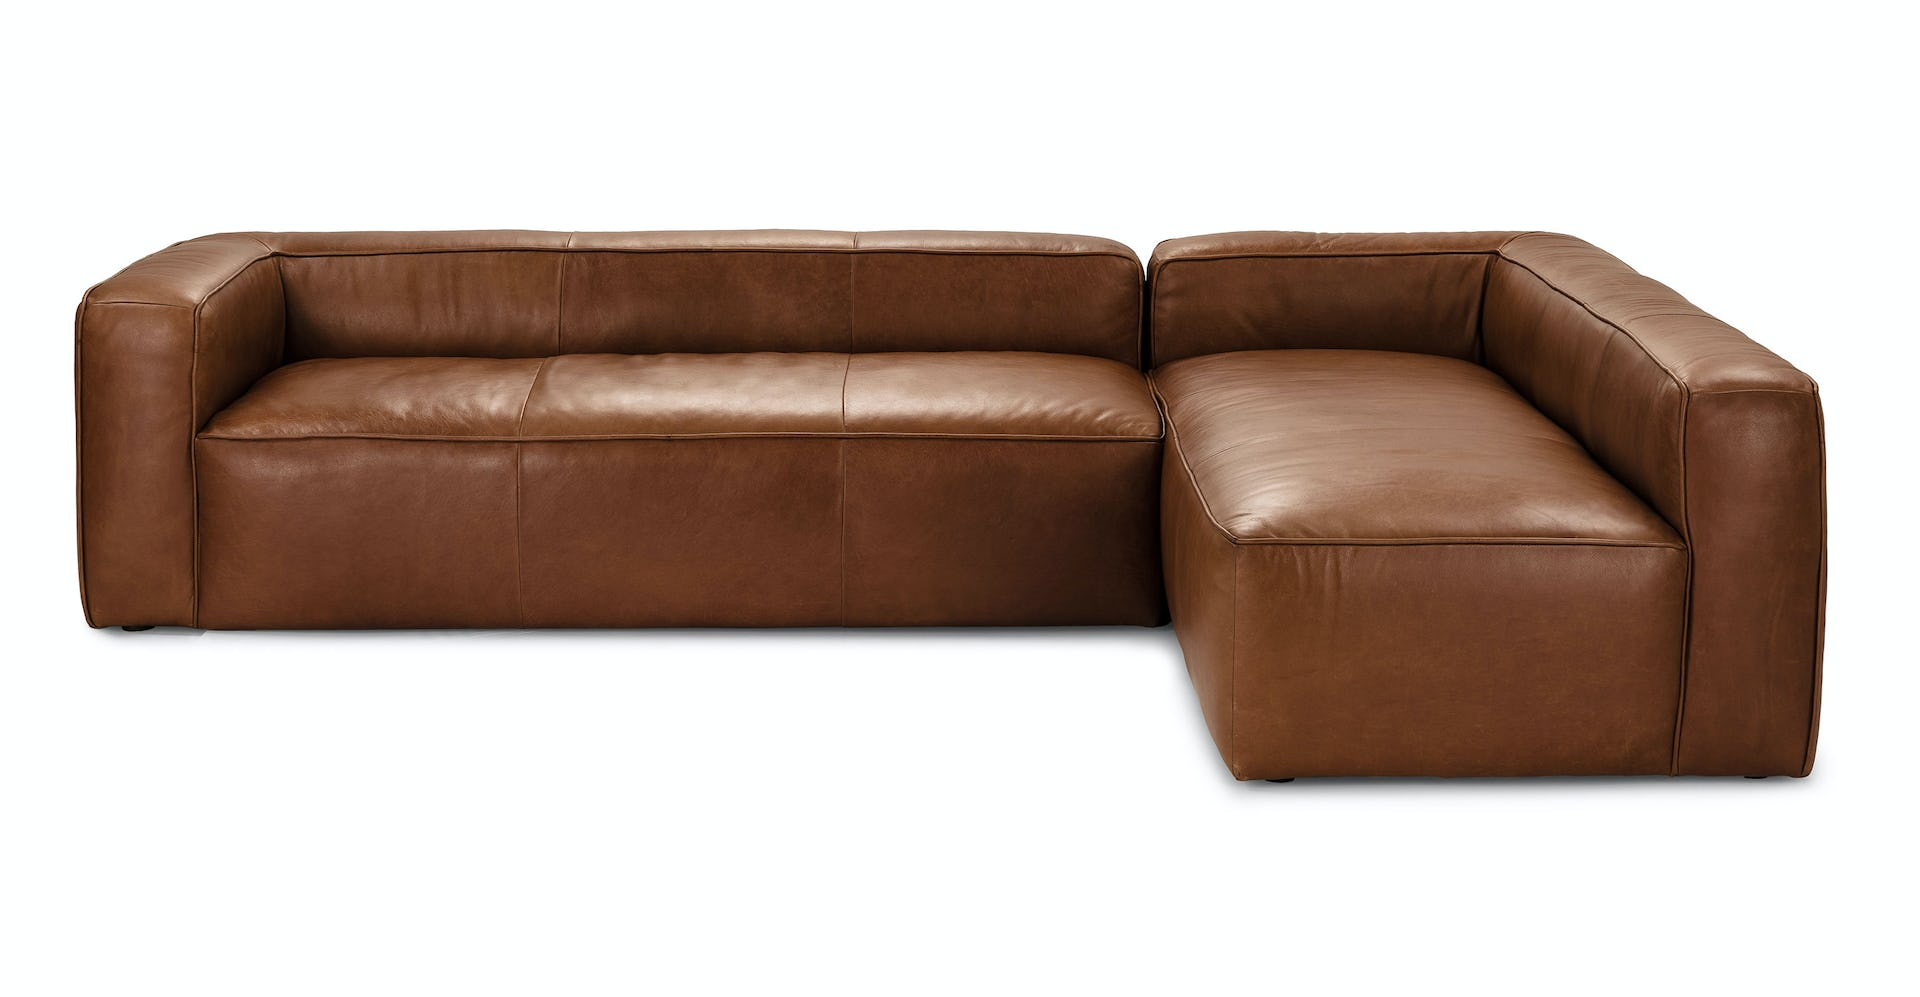 Remarkable Mello Taos Brown Right Arm Corner Sectional Beatyapartments Chair Design Images Beatyapartmentscom